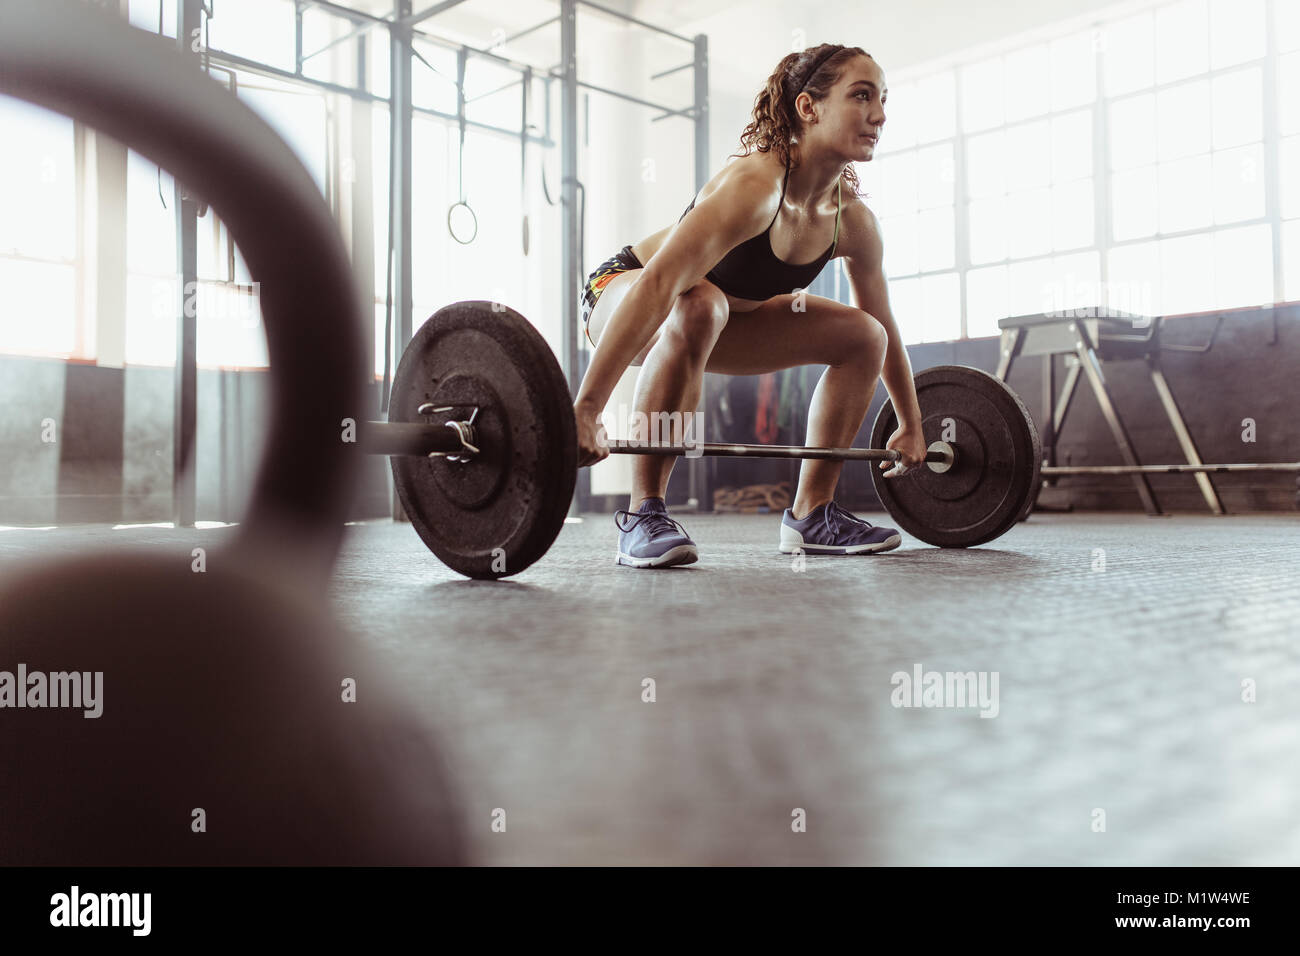 1d56537a4edf Young woman lifting a barbell at the gym. Fit female athlete exercising  with heavy weights